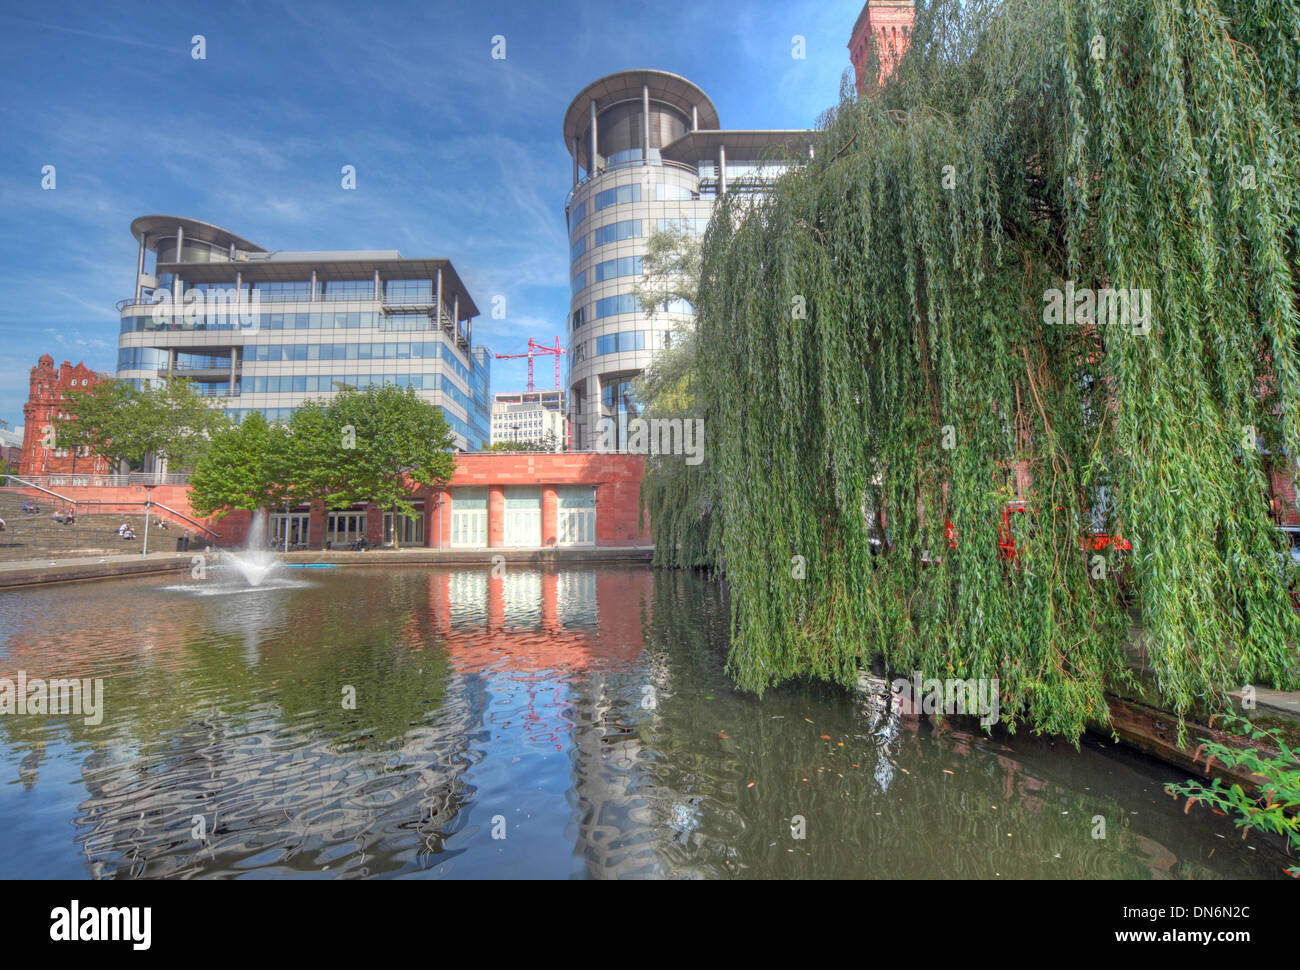 Wide angle shot of Bridgewater Hall & 101 Barbirolli Square Manchester, England UK with canal basin reflections - Stock Image